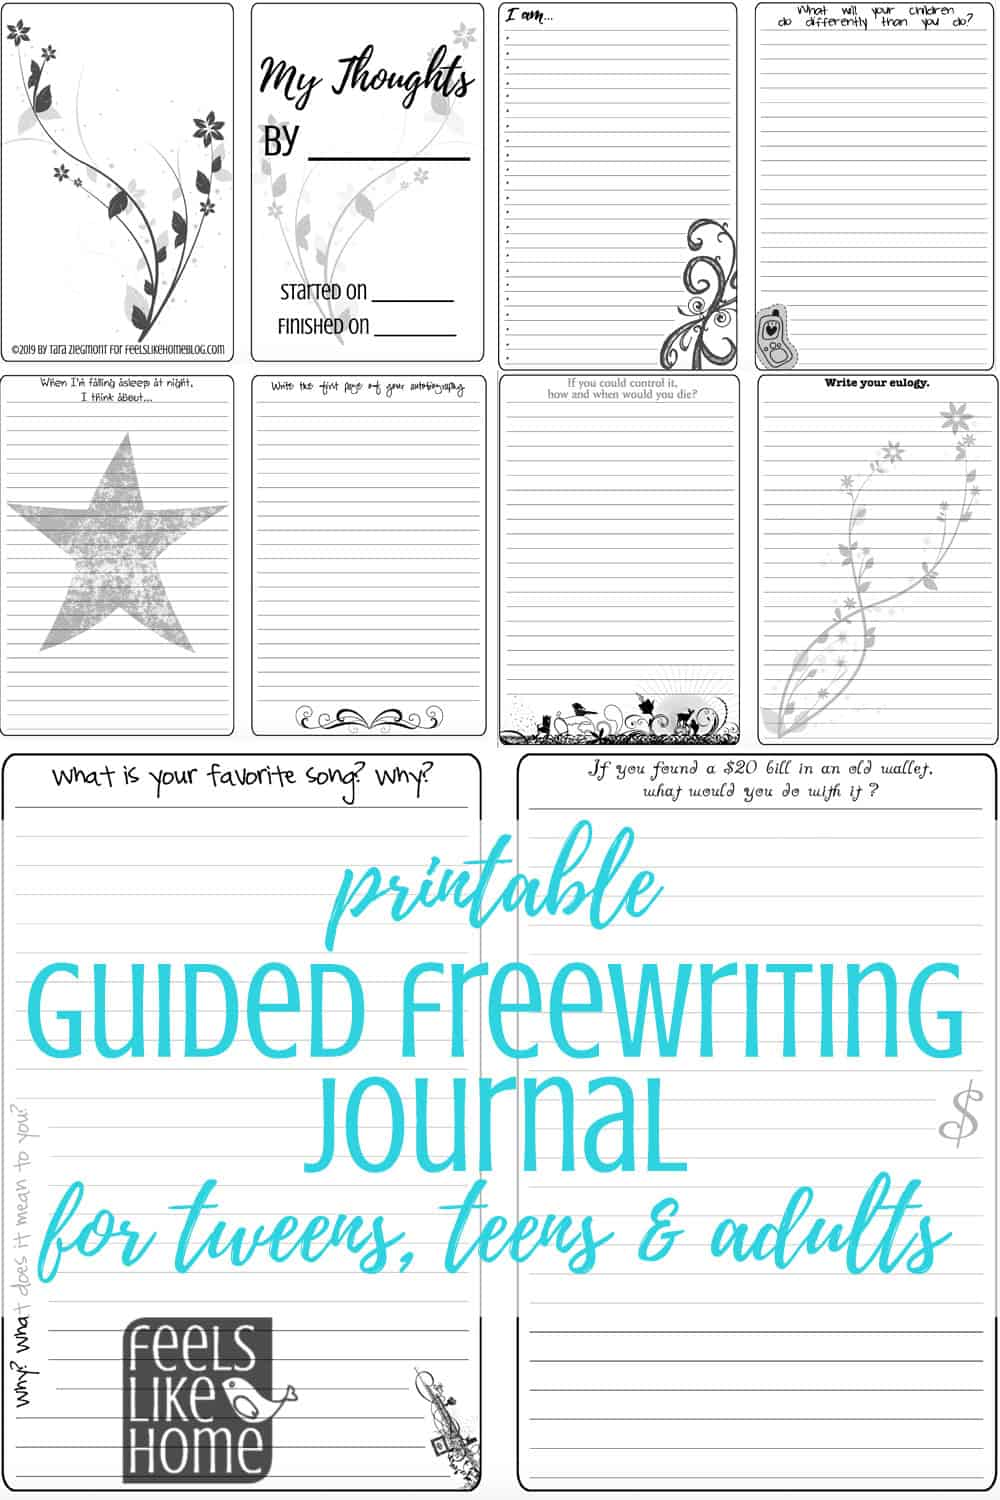 My Thoughts: A Printable Guided Freewriting Journal for Tweens, Teens, & Adults